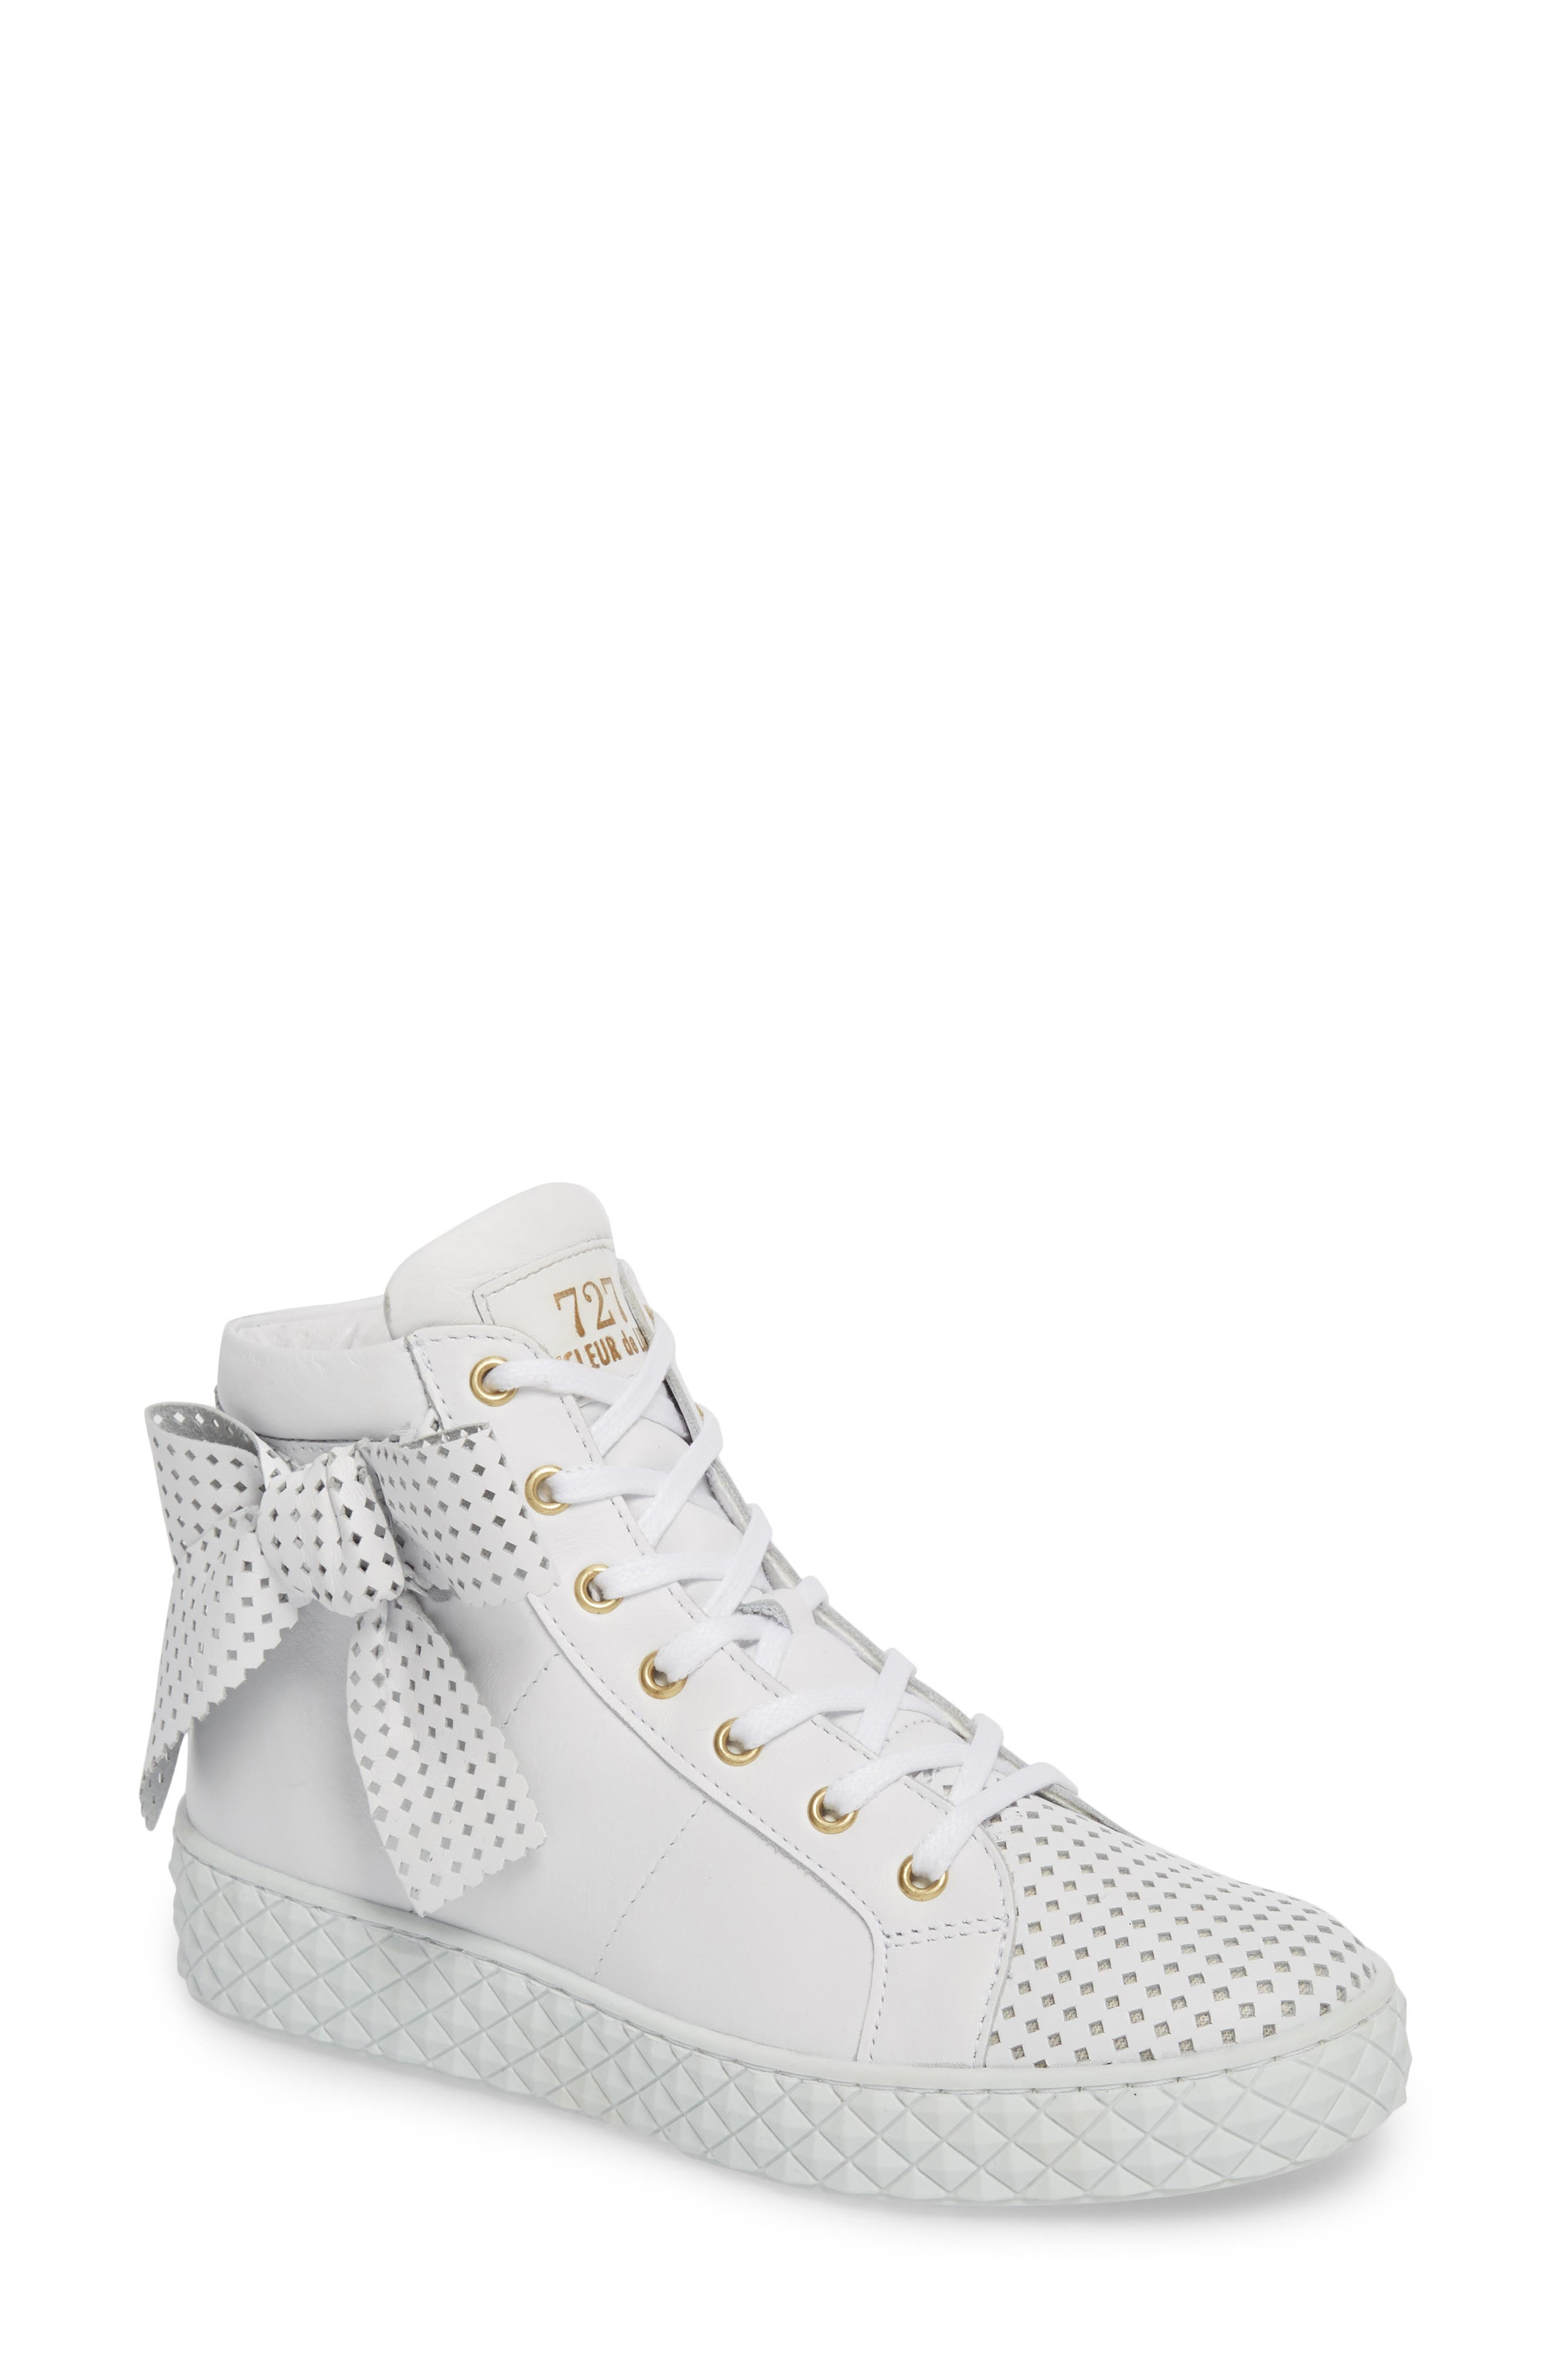 Avery High Top Sneaker,                         Main,                         color, WHITE LEATHER